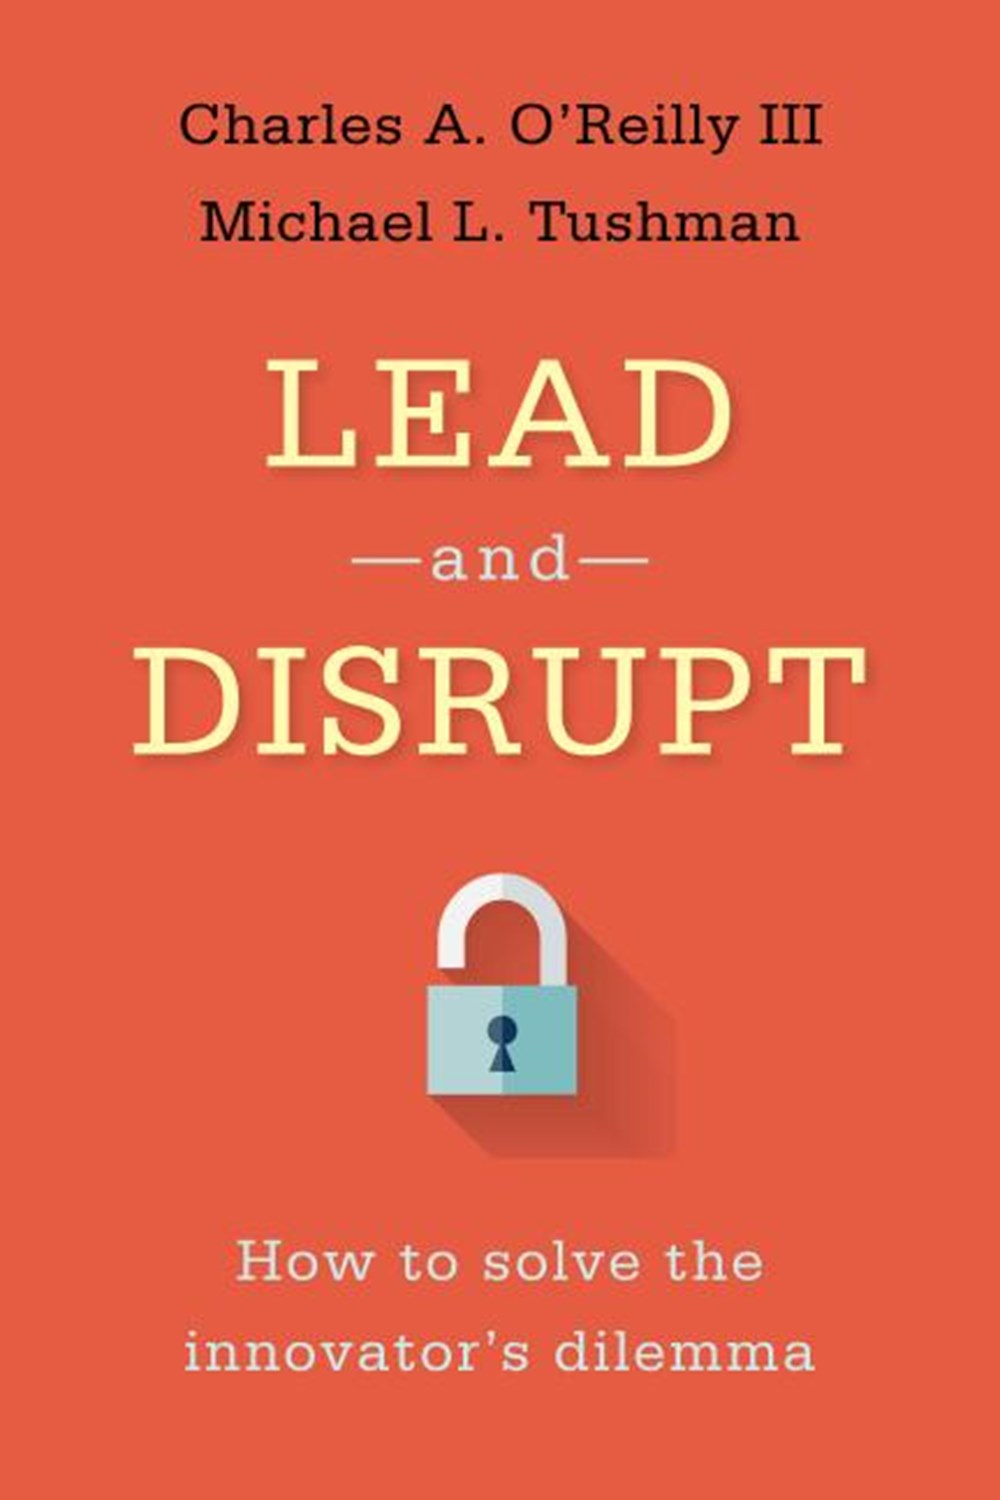 Lead and Disrupt How to Solve the Innovator's Dilemma